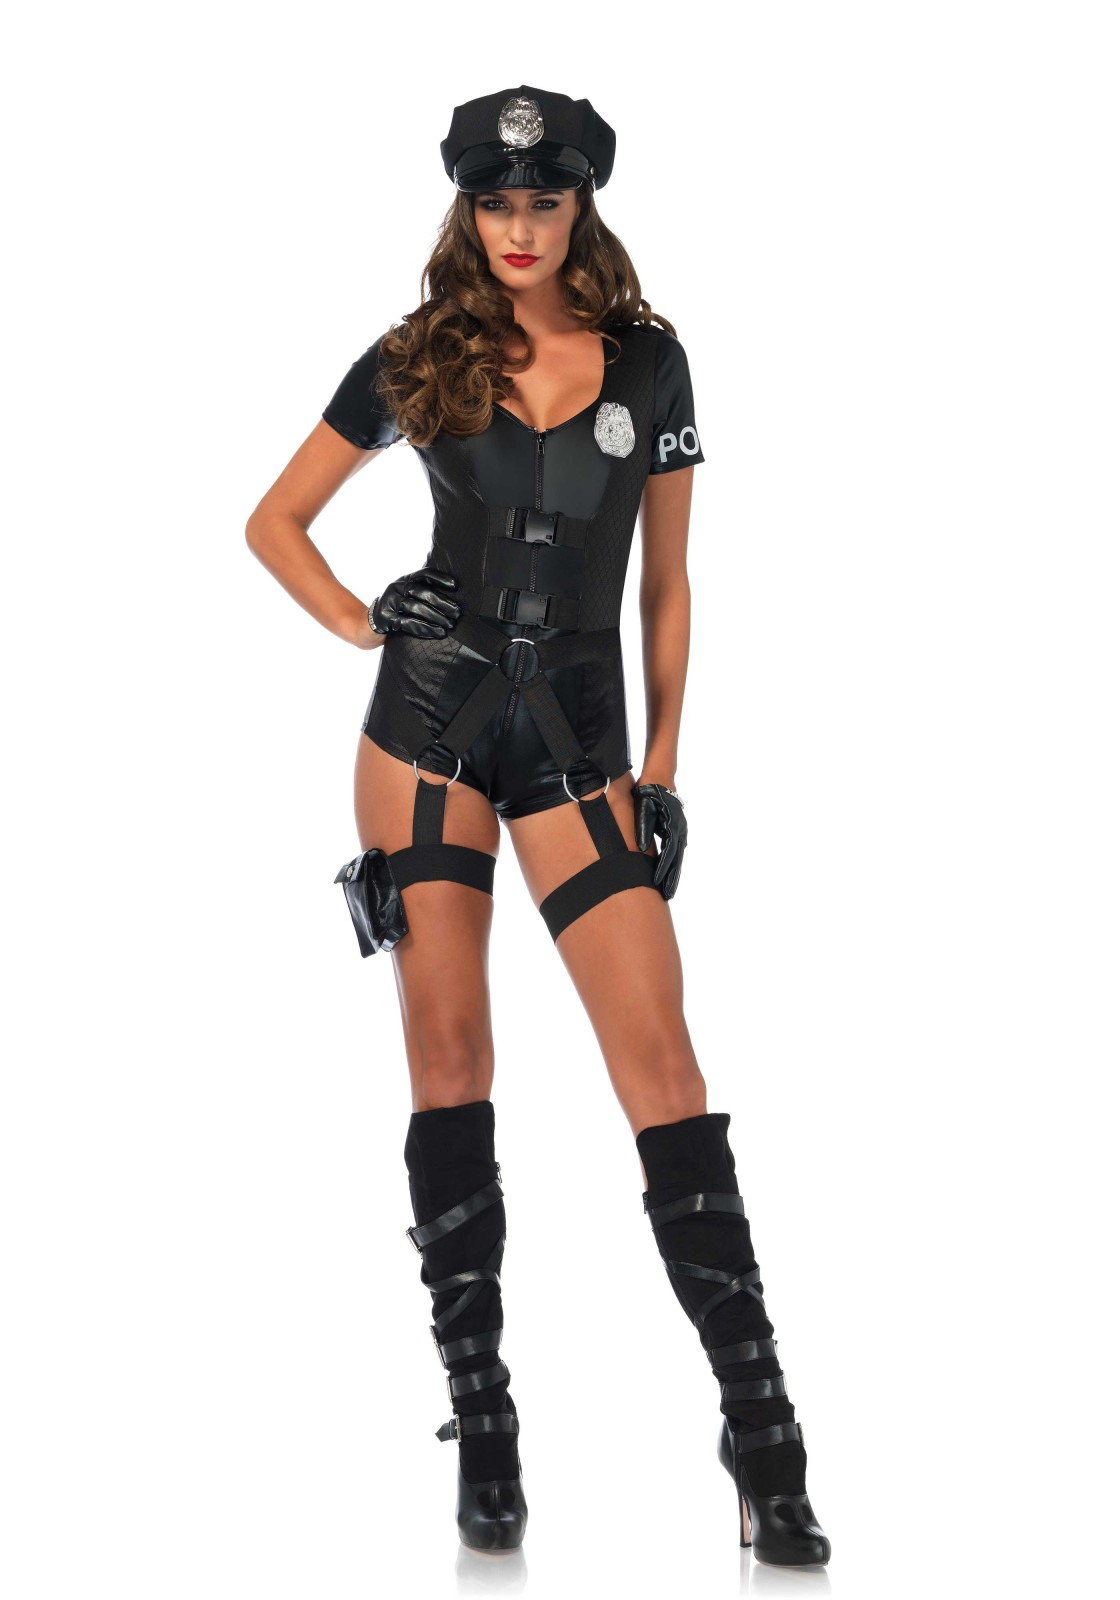 3 PC. Flirty Five-0, includes quilted zipper front romper with attached utility belt with O-ring straps and garters, pin-on badge and police hat.